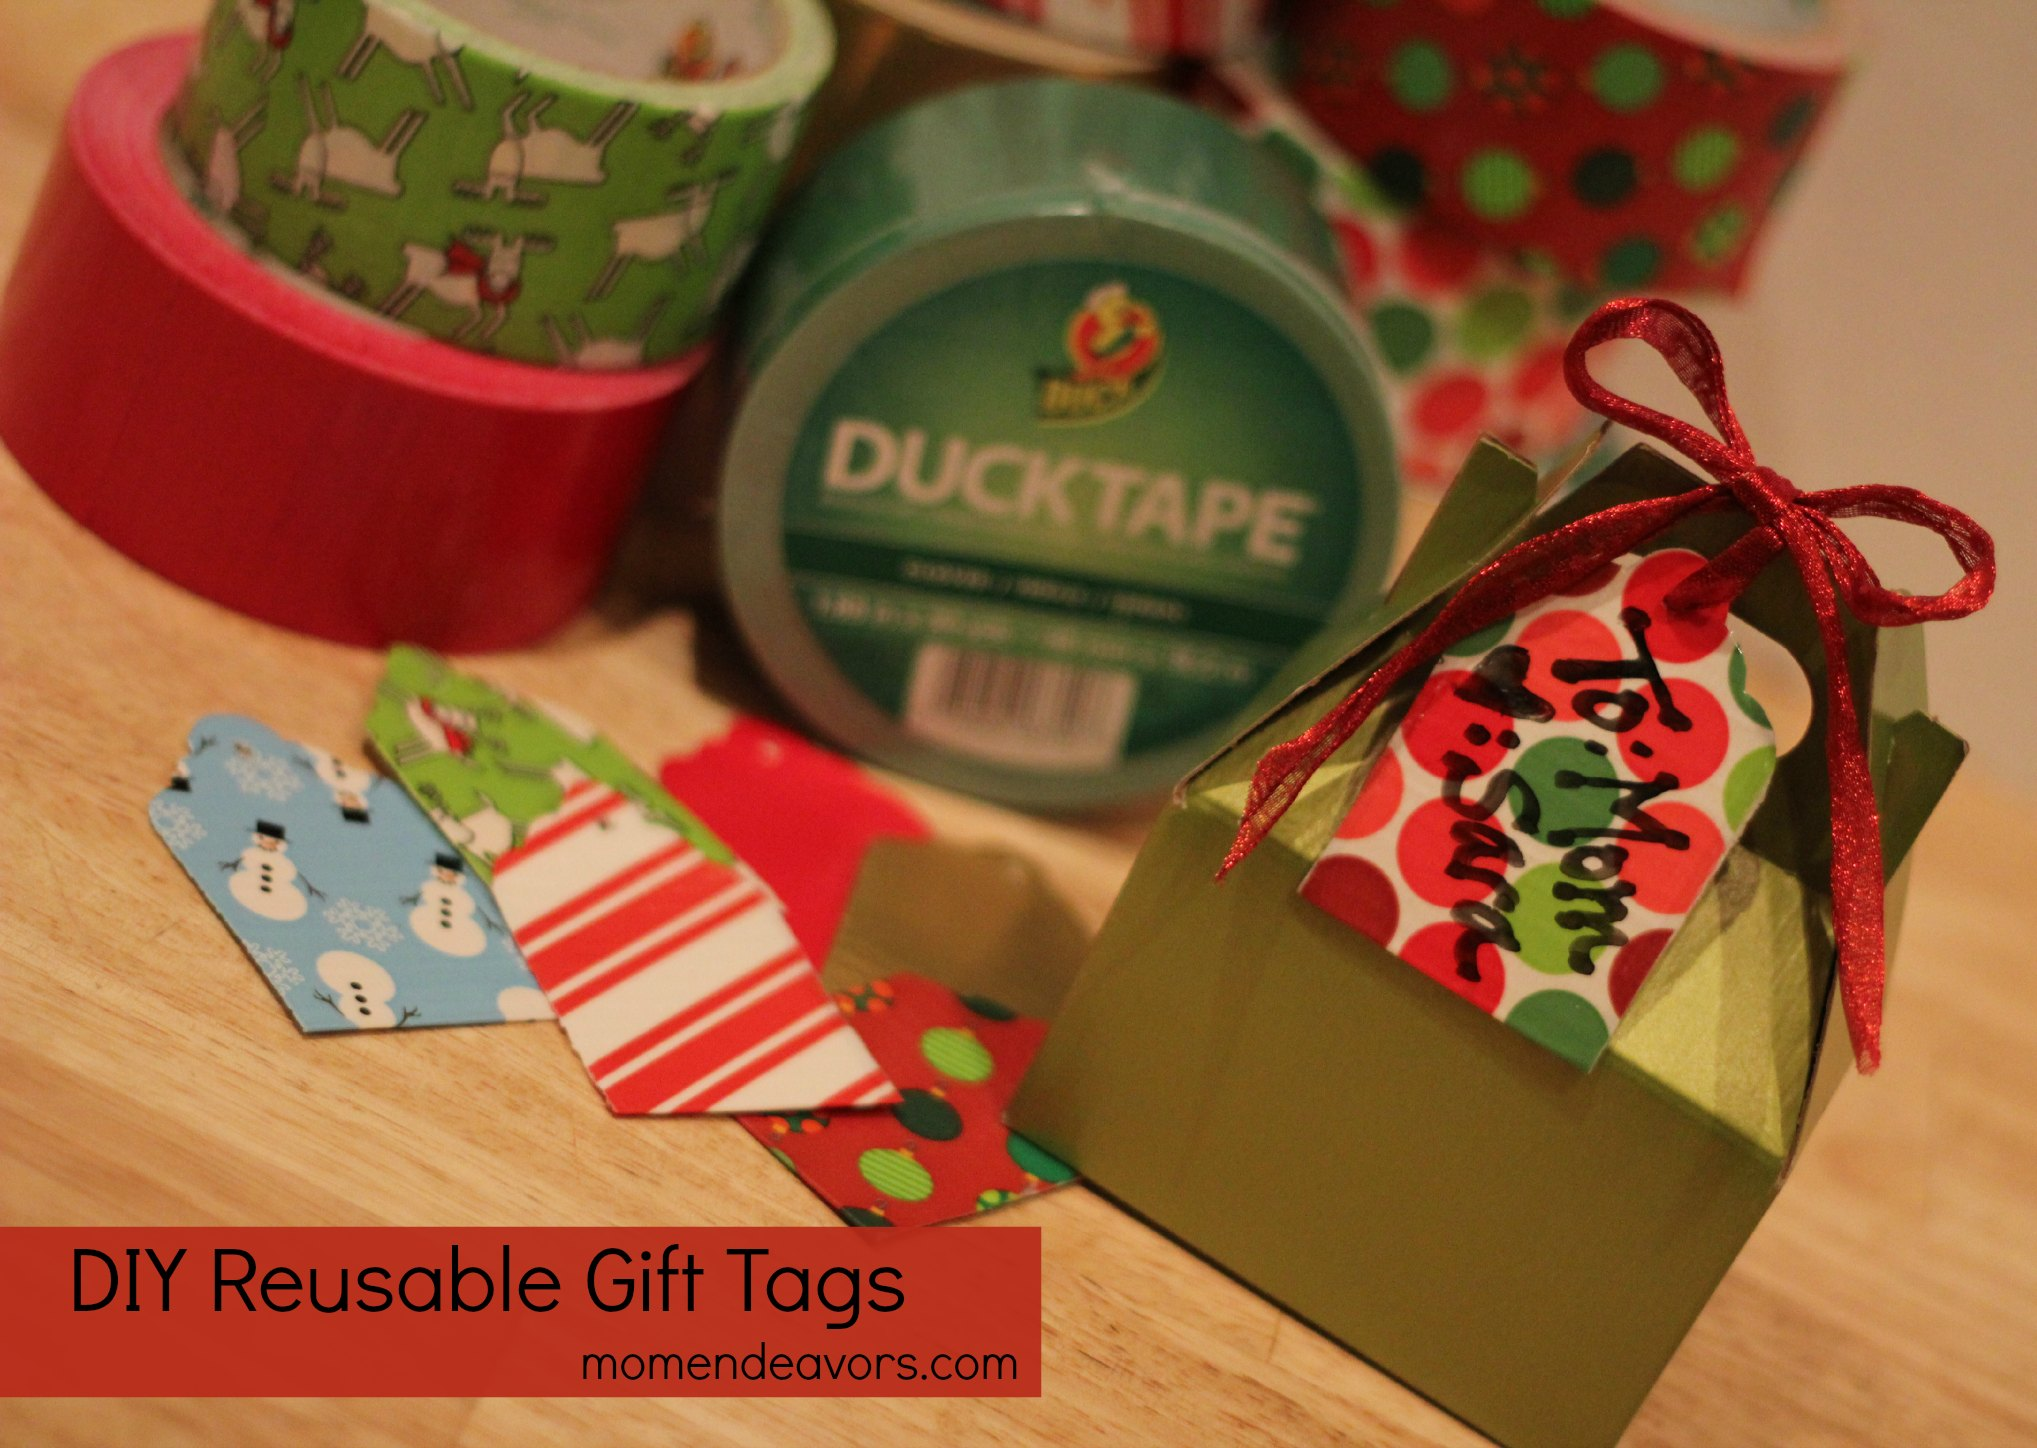 Diy Reusable Gift Tags With Holiday Duck Tape